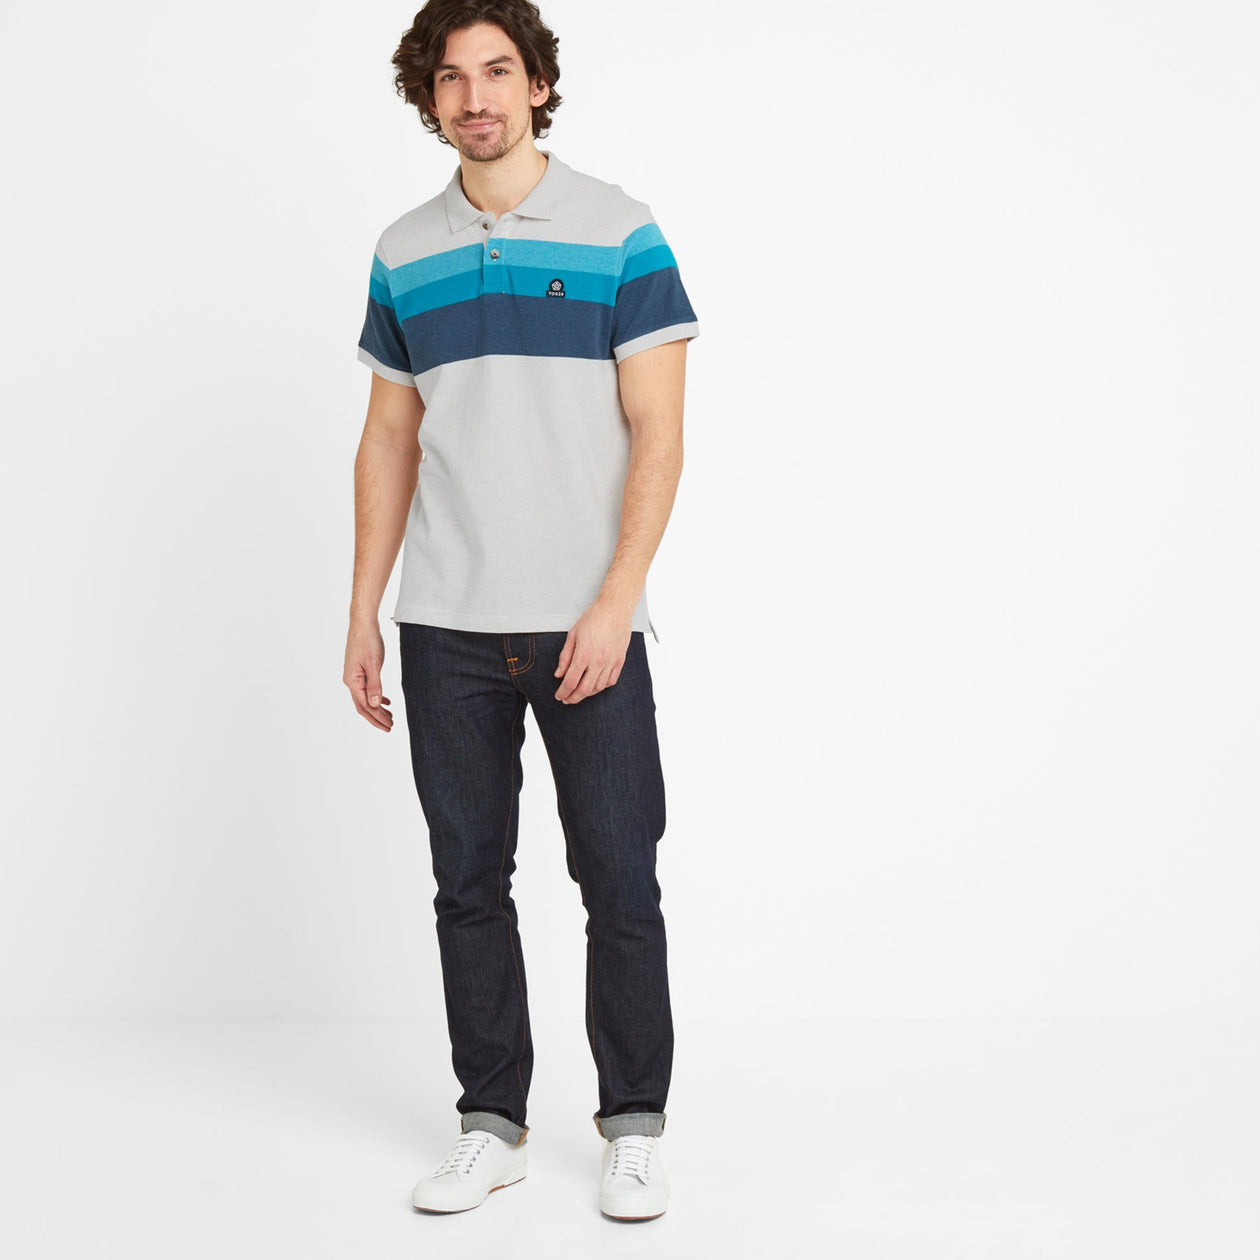 Ramsden Mens Stripe Polo Shirt - Snow Marl/Caribbean Blue image 4